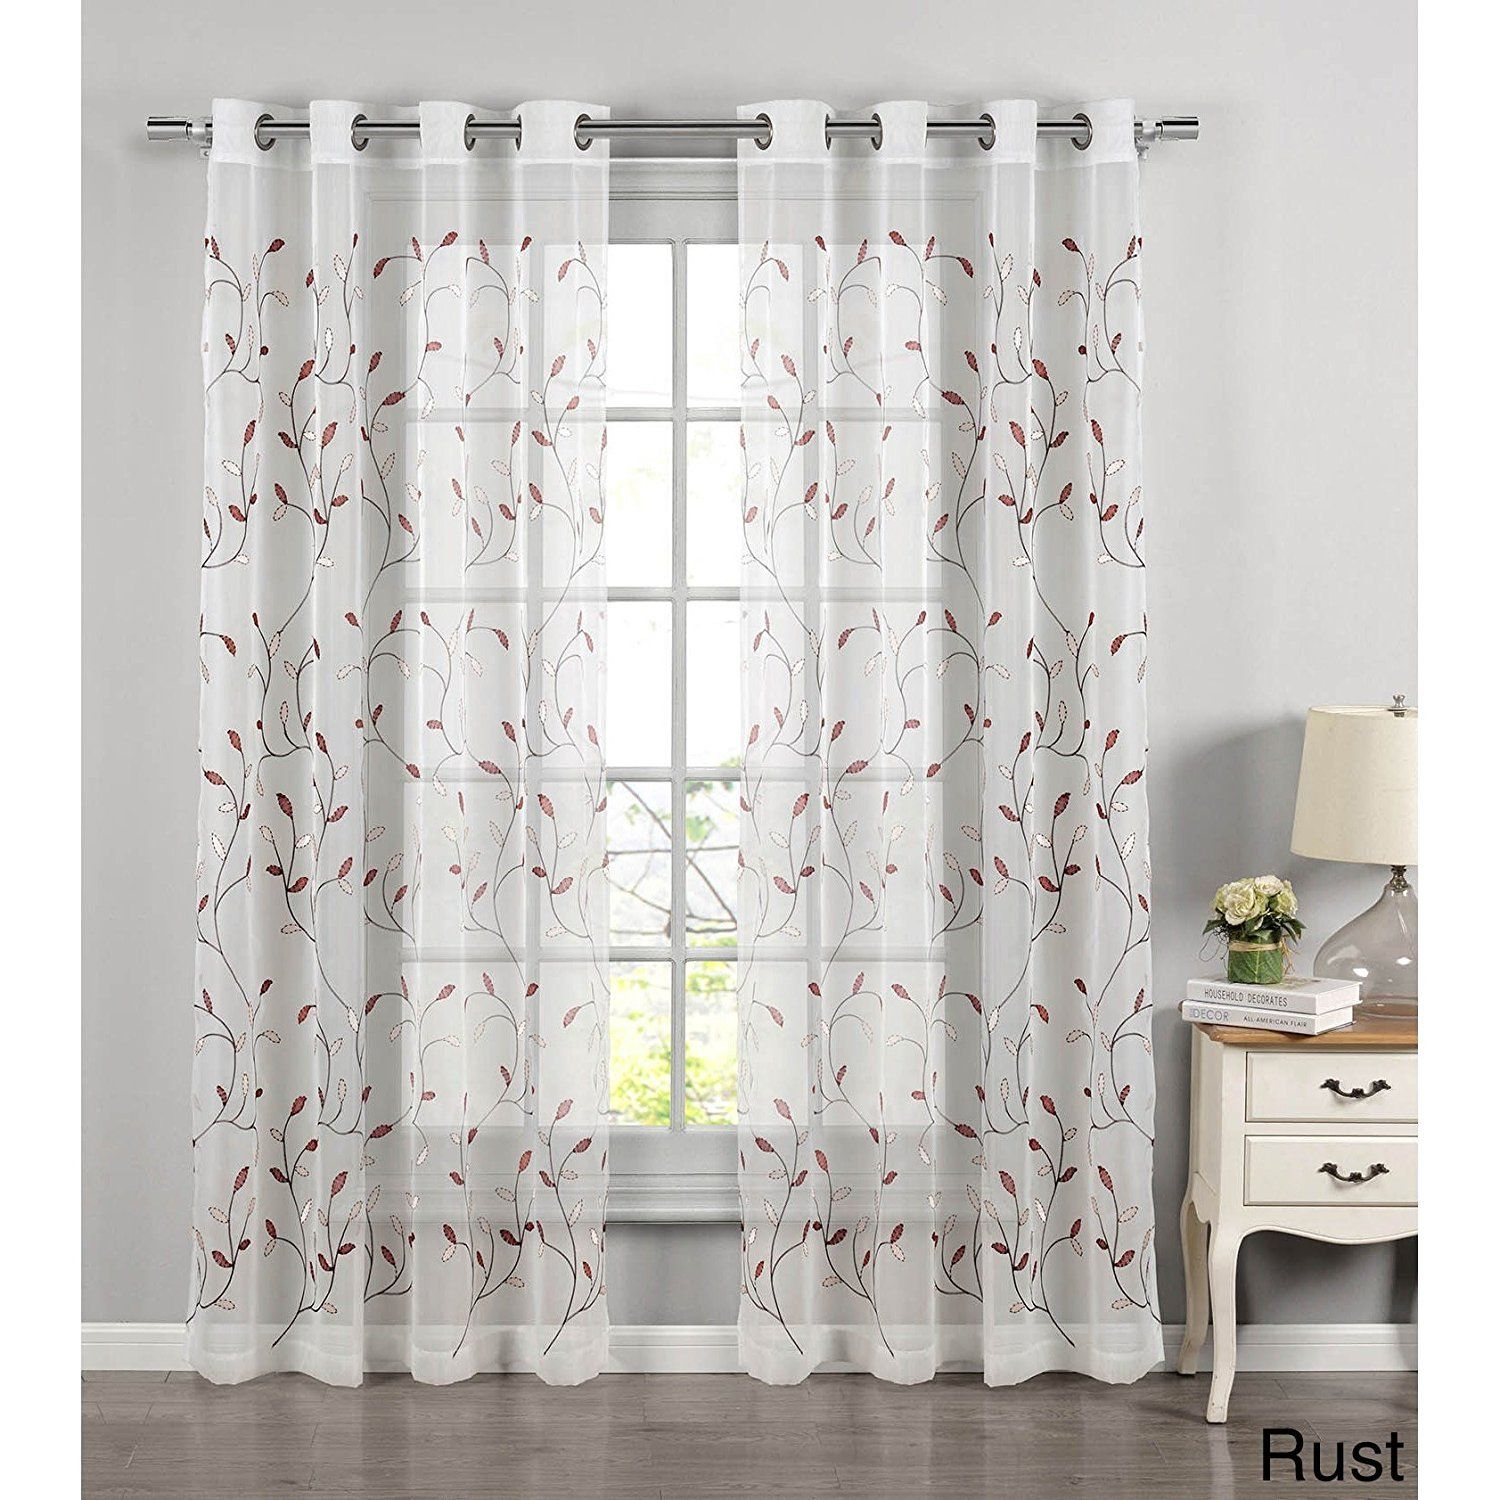 Girls Rust Embroidered Wavy Leaves Sheer Window Curtain 84 Inch